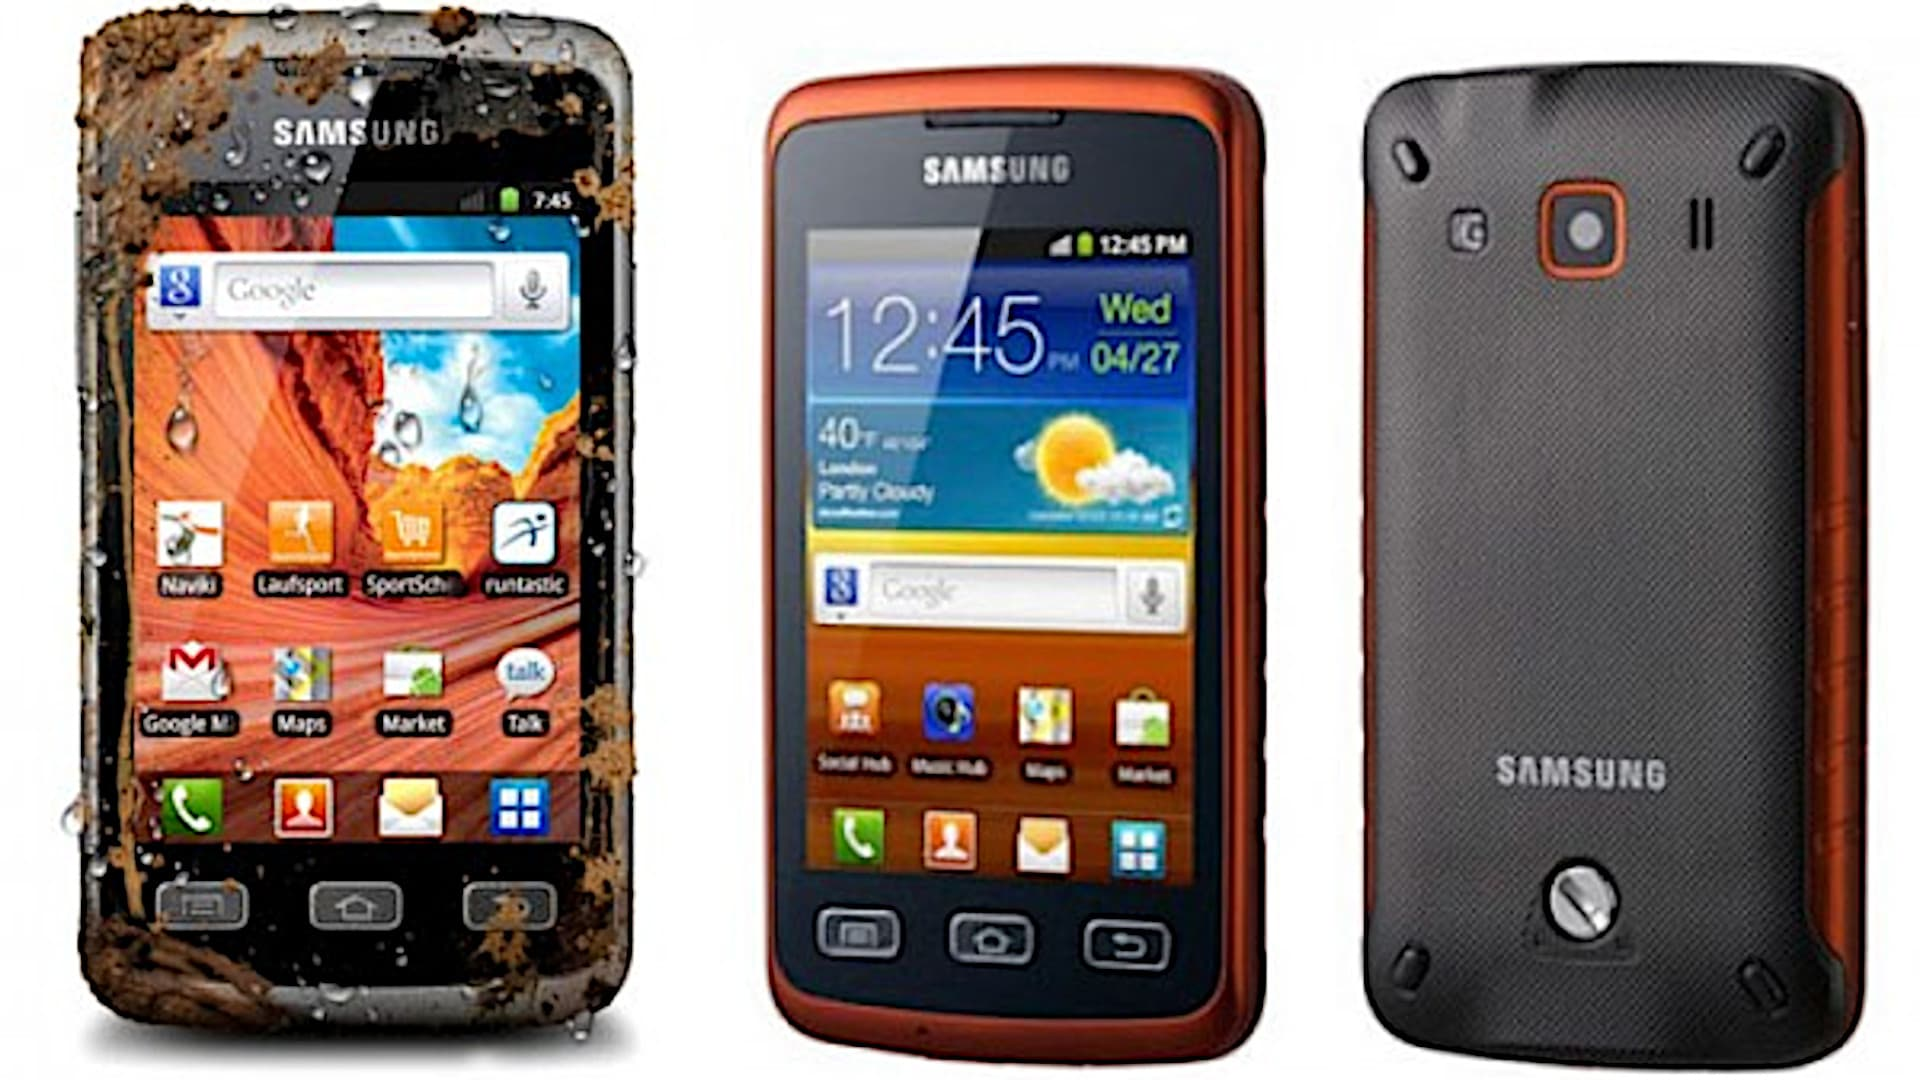 Samsung S5690 Xcover Review